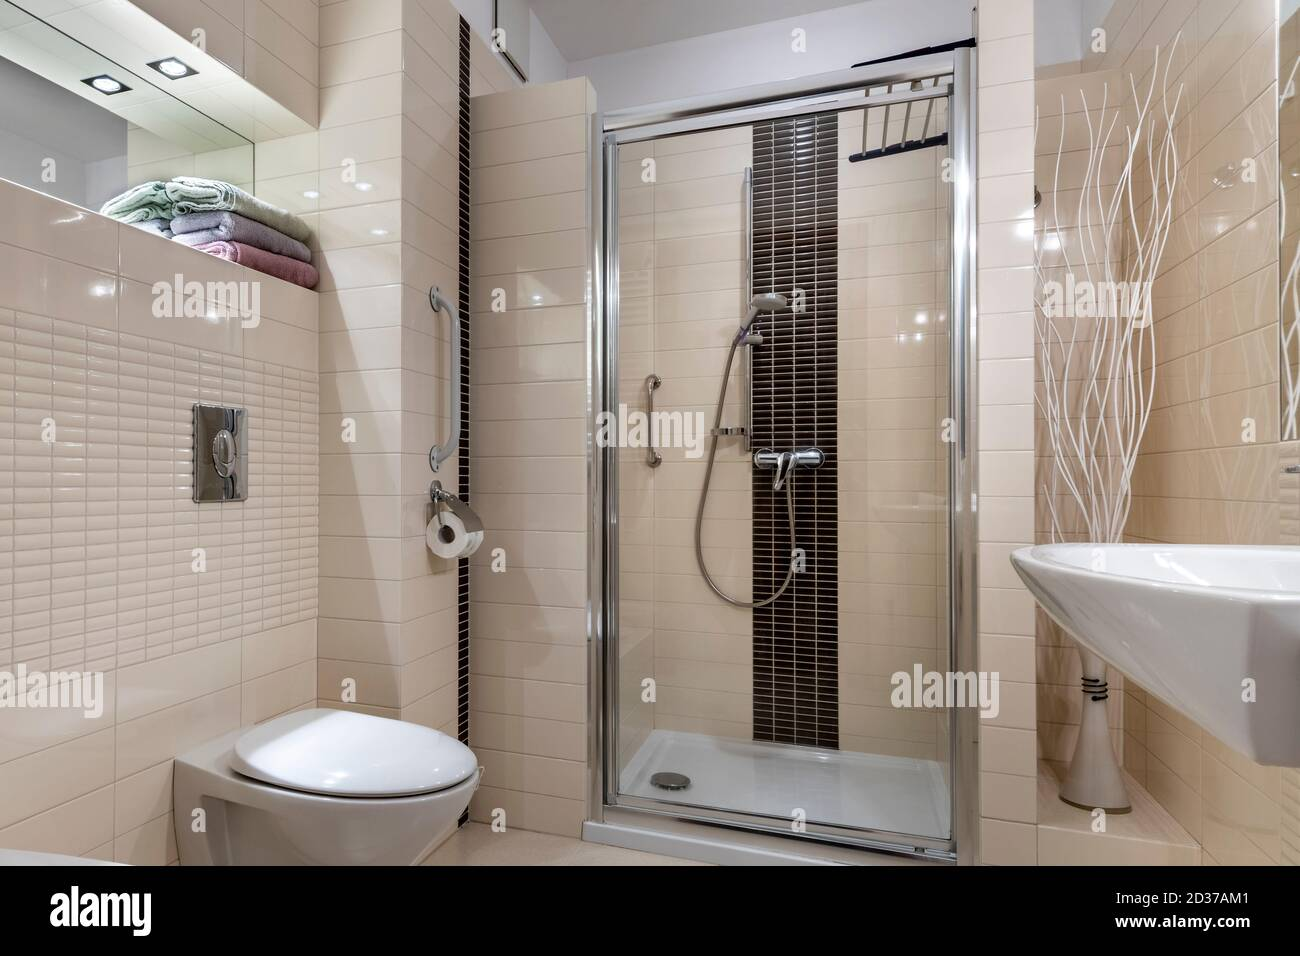 Small Bathroom In Contemporary Compact Style Interior Design Stock Photo Alamy